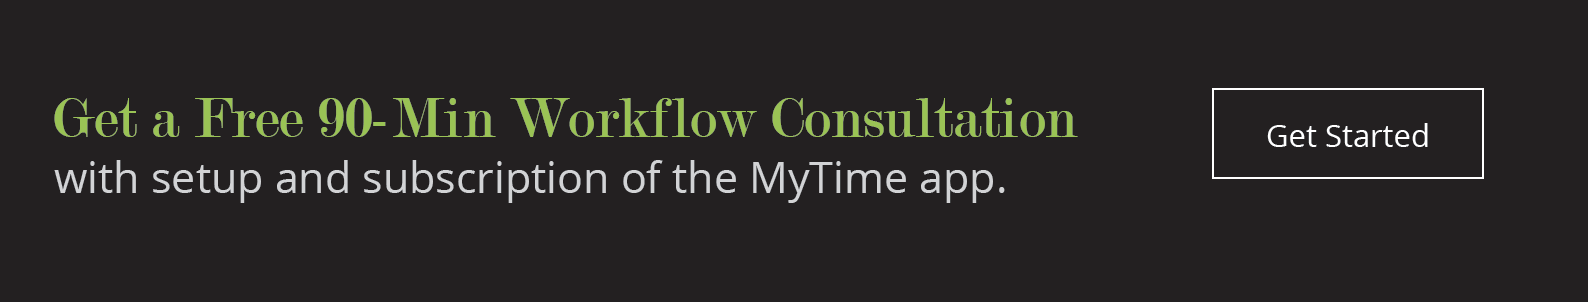 Get a Free 90-Min Workflow Consultation